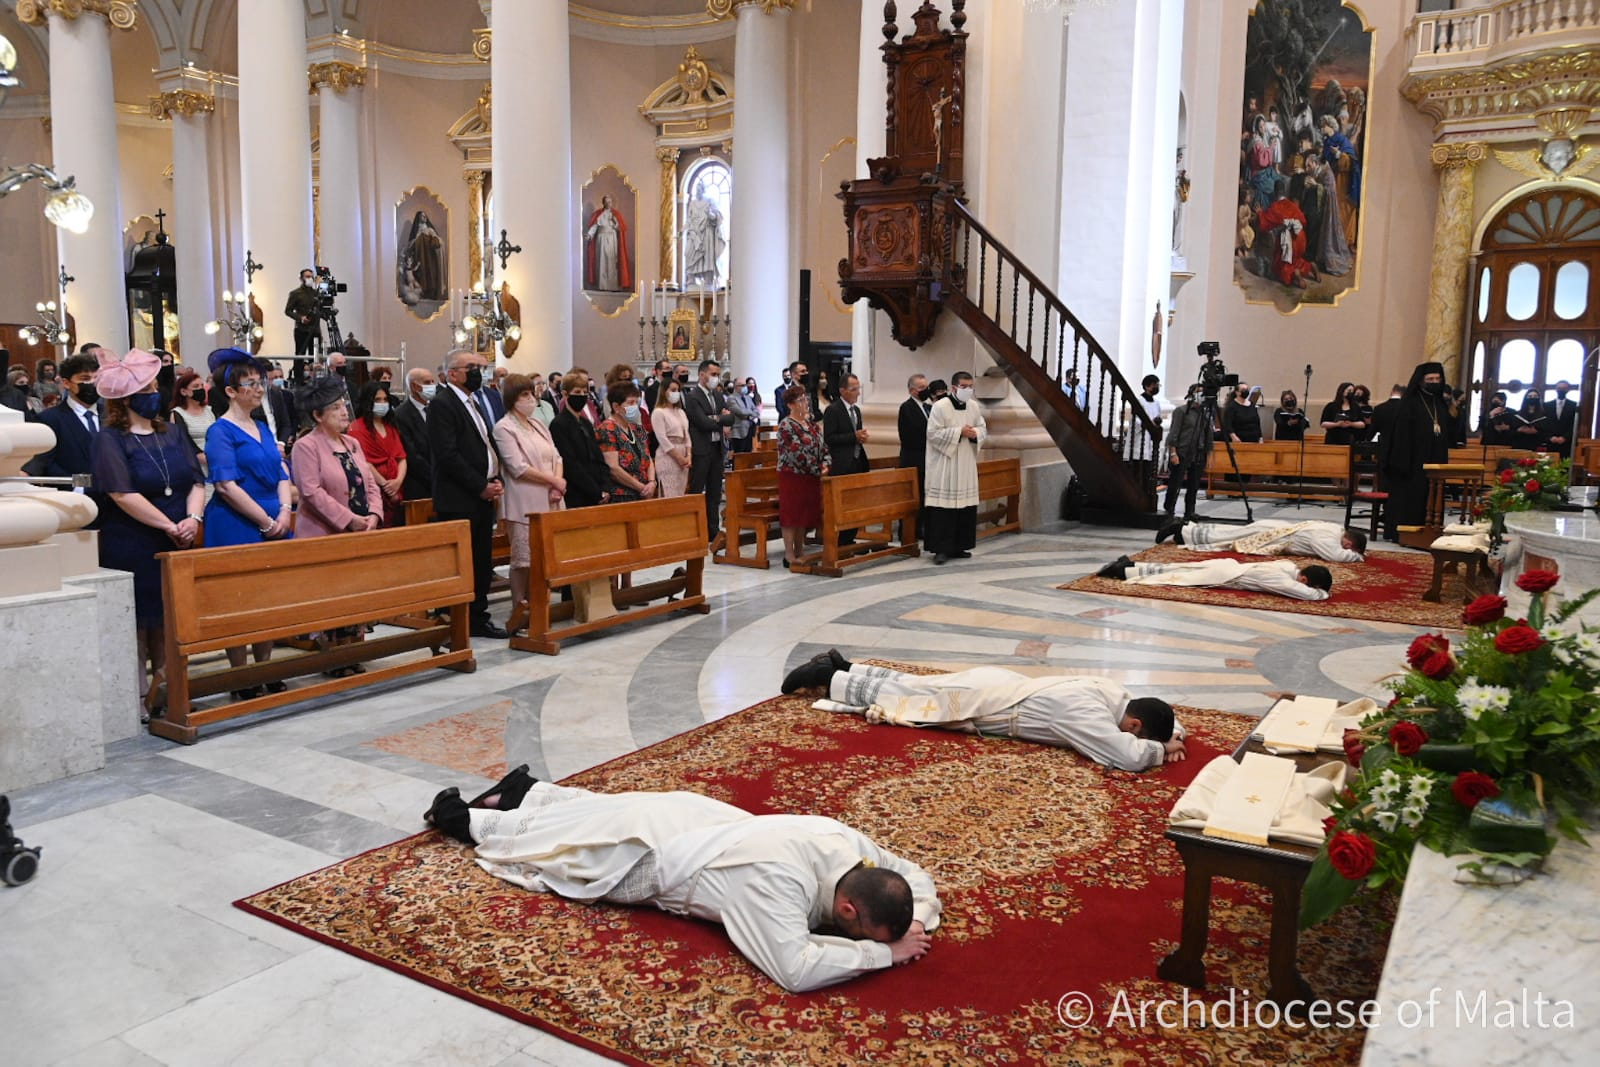 You're called to heal our people spiritually, Archbishop tells priests on their ordination